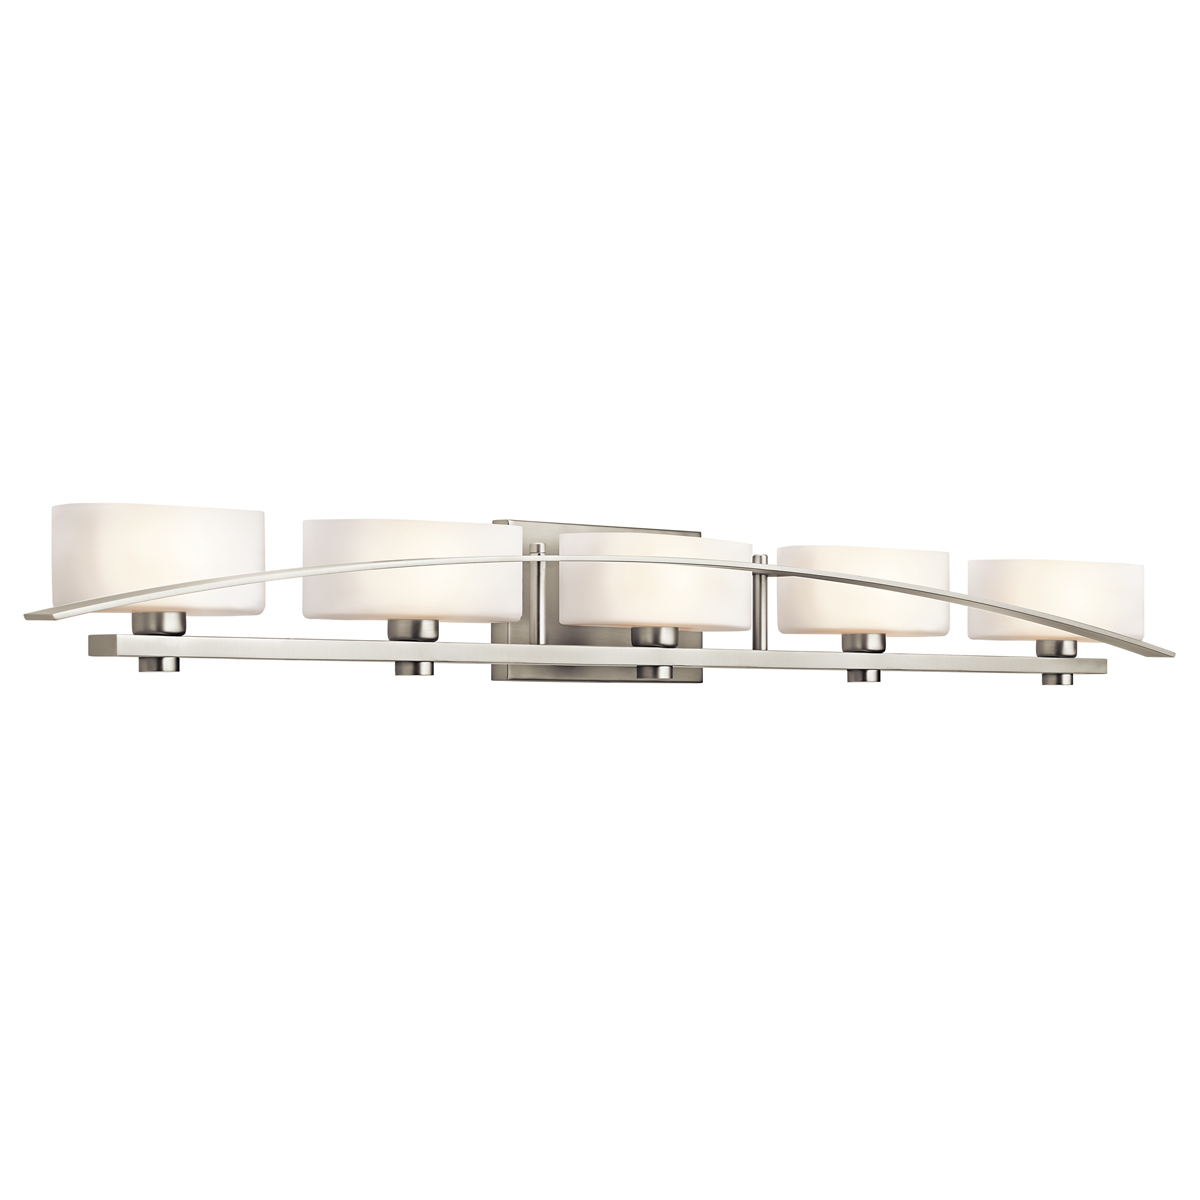 Kichler Lighting 45319ni Suspension 5 Light Bath Fixture